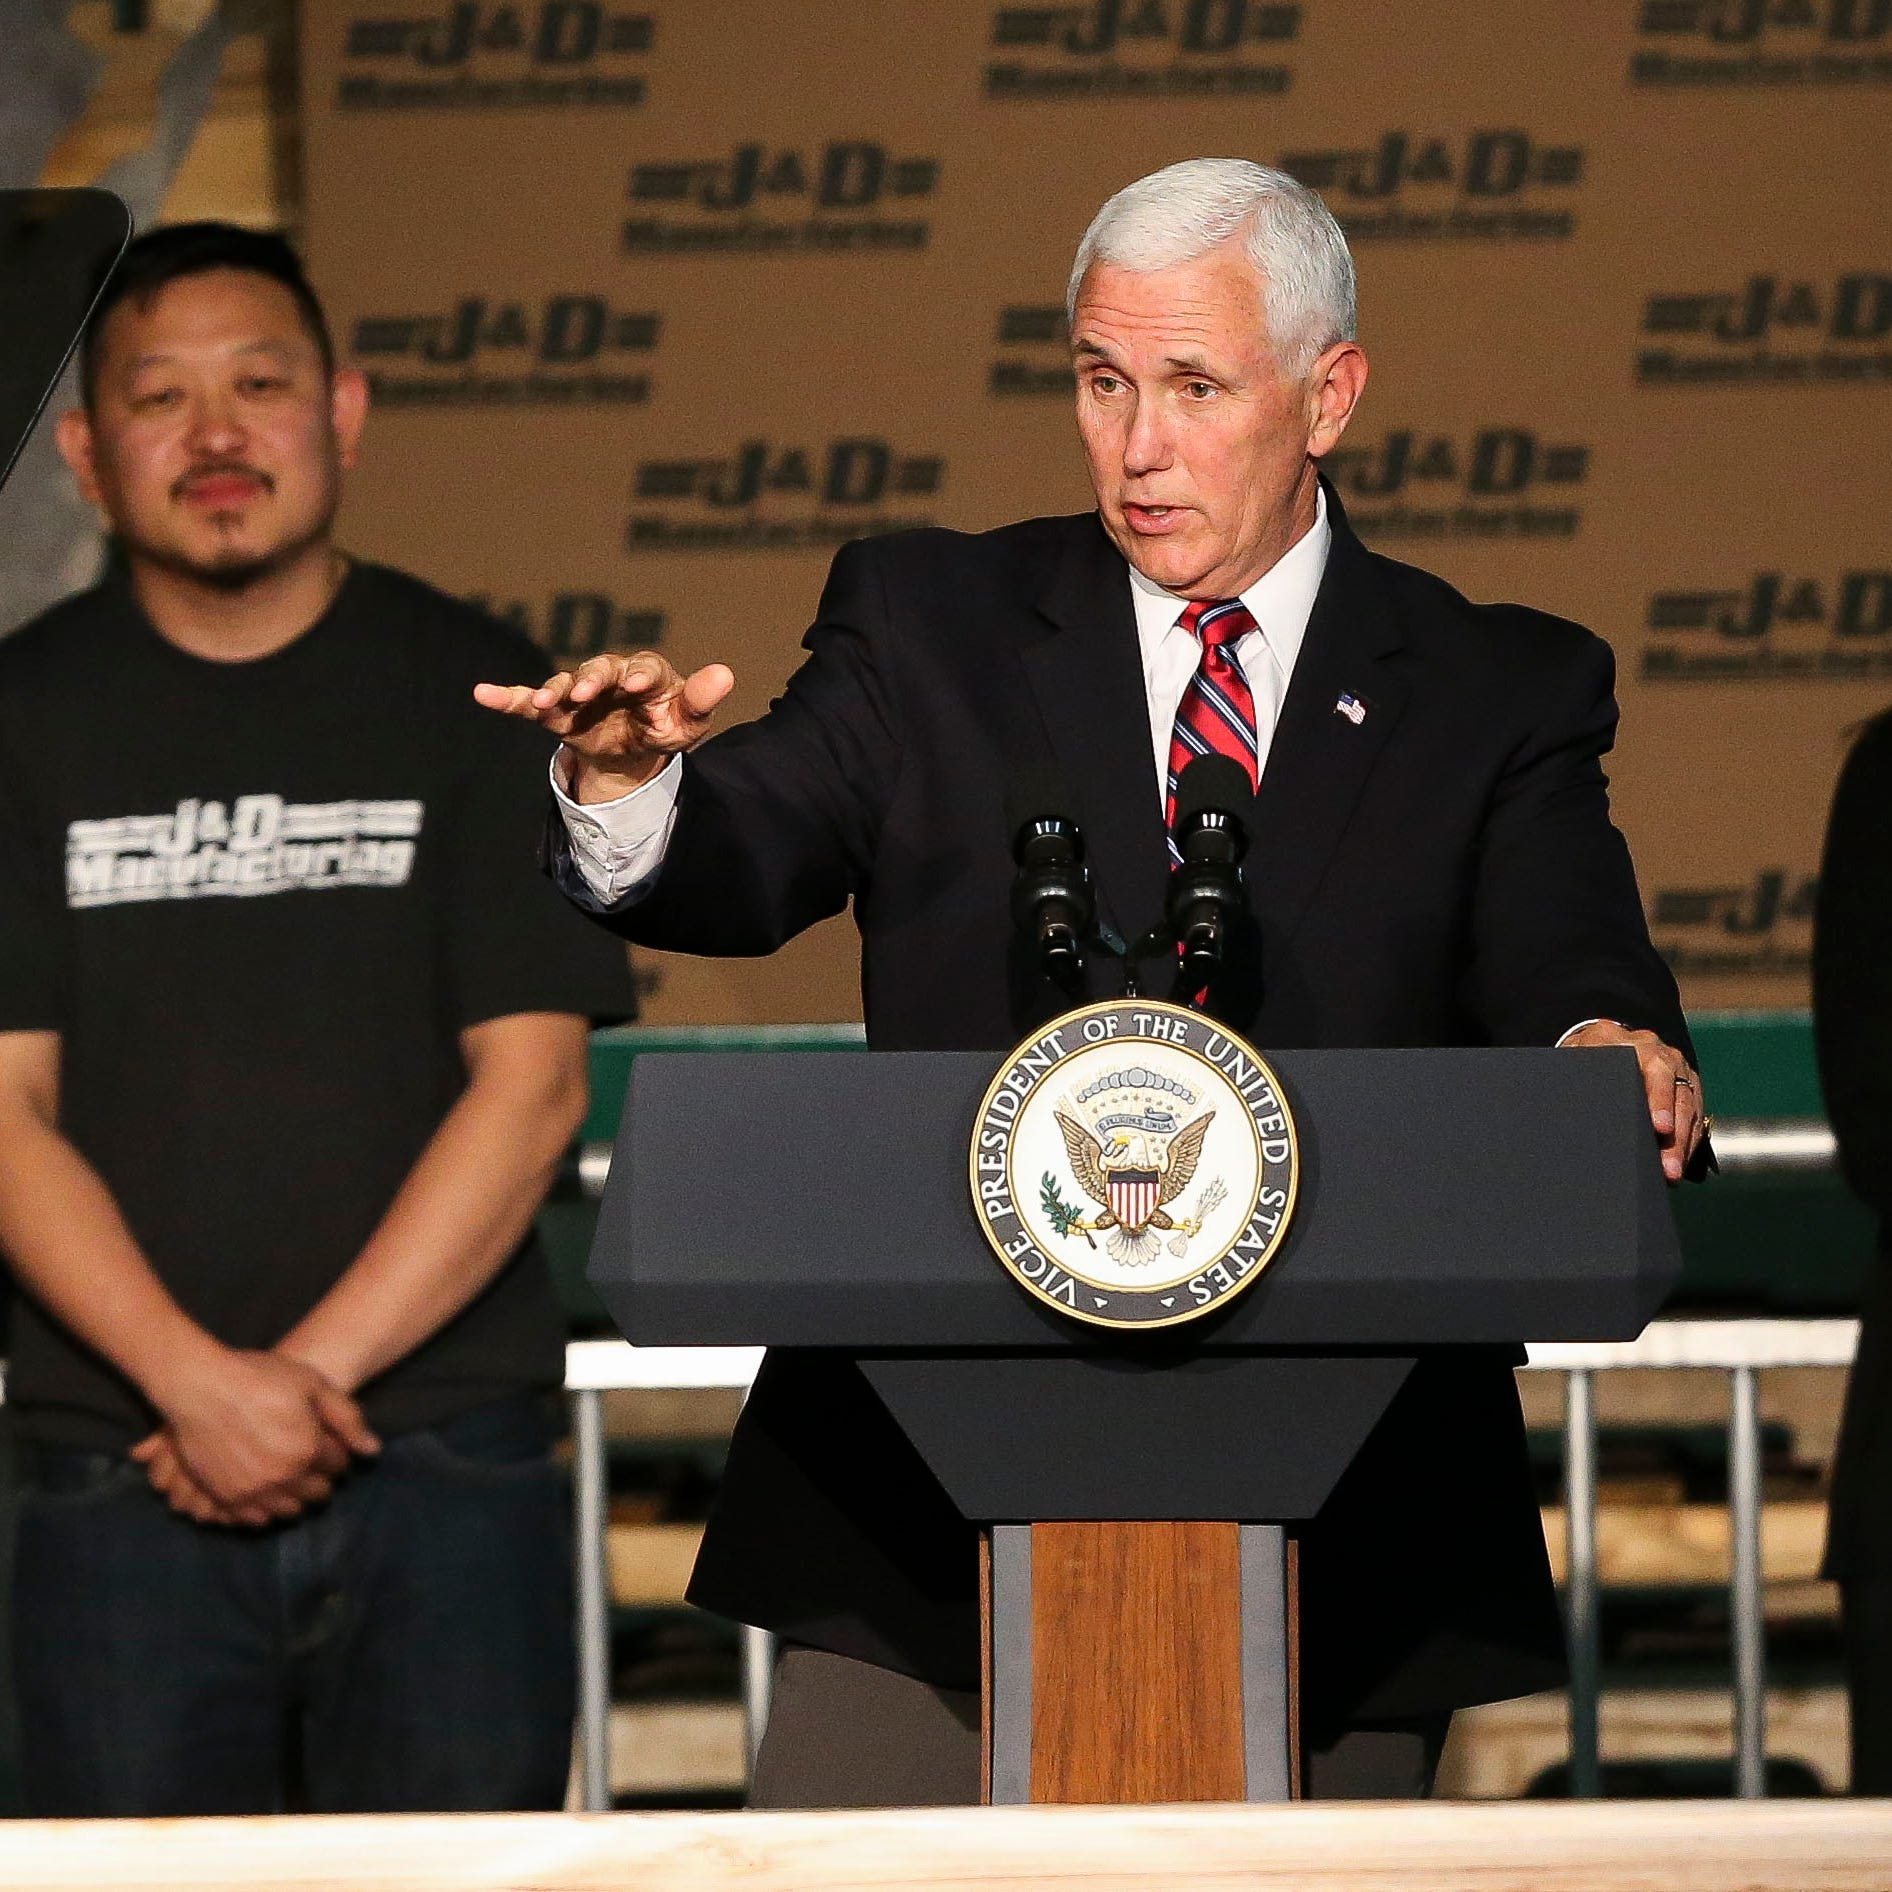 'When the heartland succeeds, America succeeds': VP Pence pushes proposed new trade deal